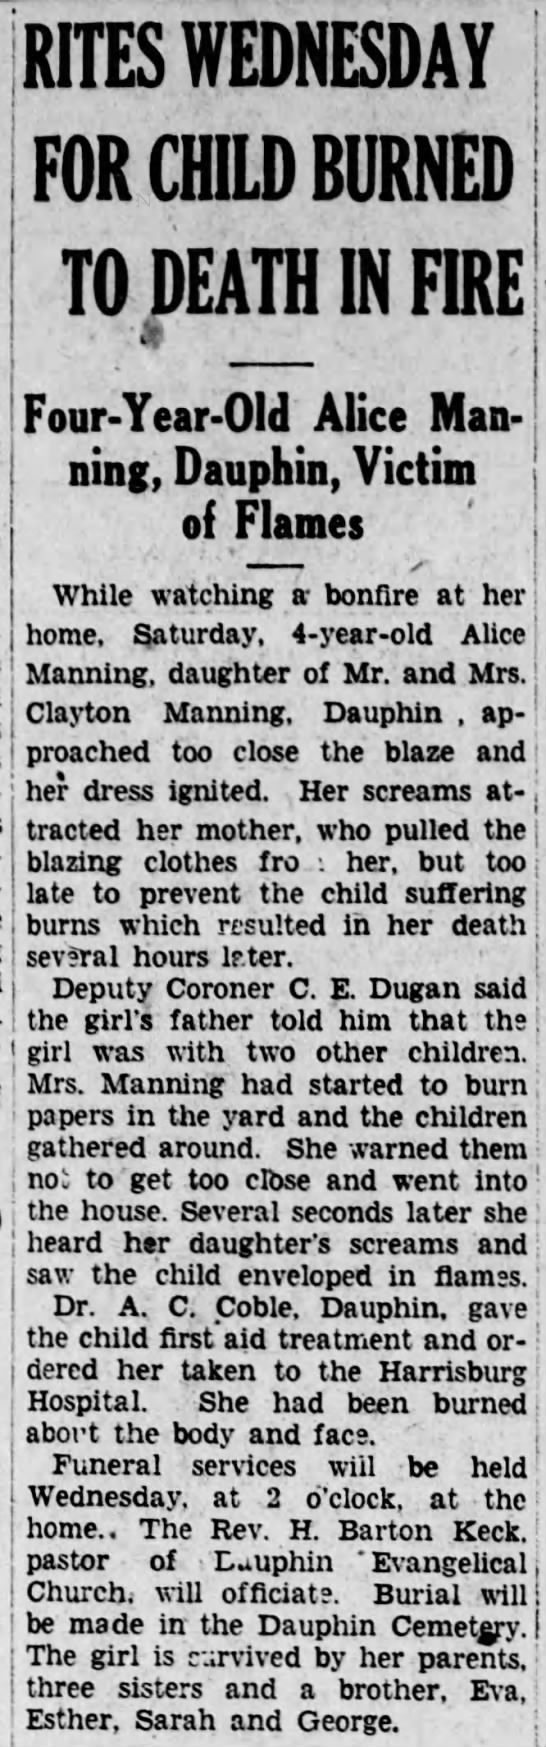 - , j RITES WEDNESDAY FOR CHILD BURNED TO DEATH...